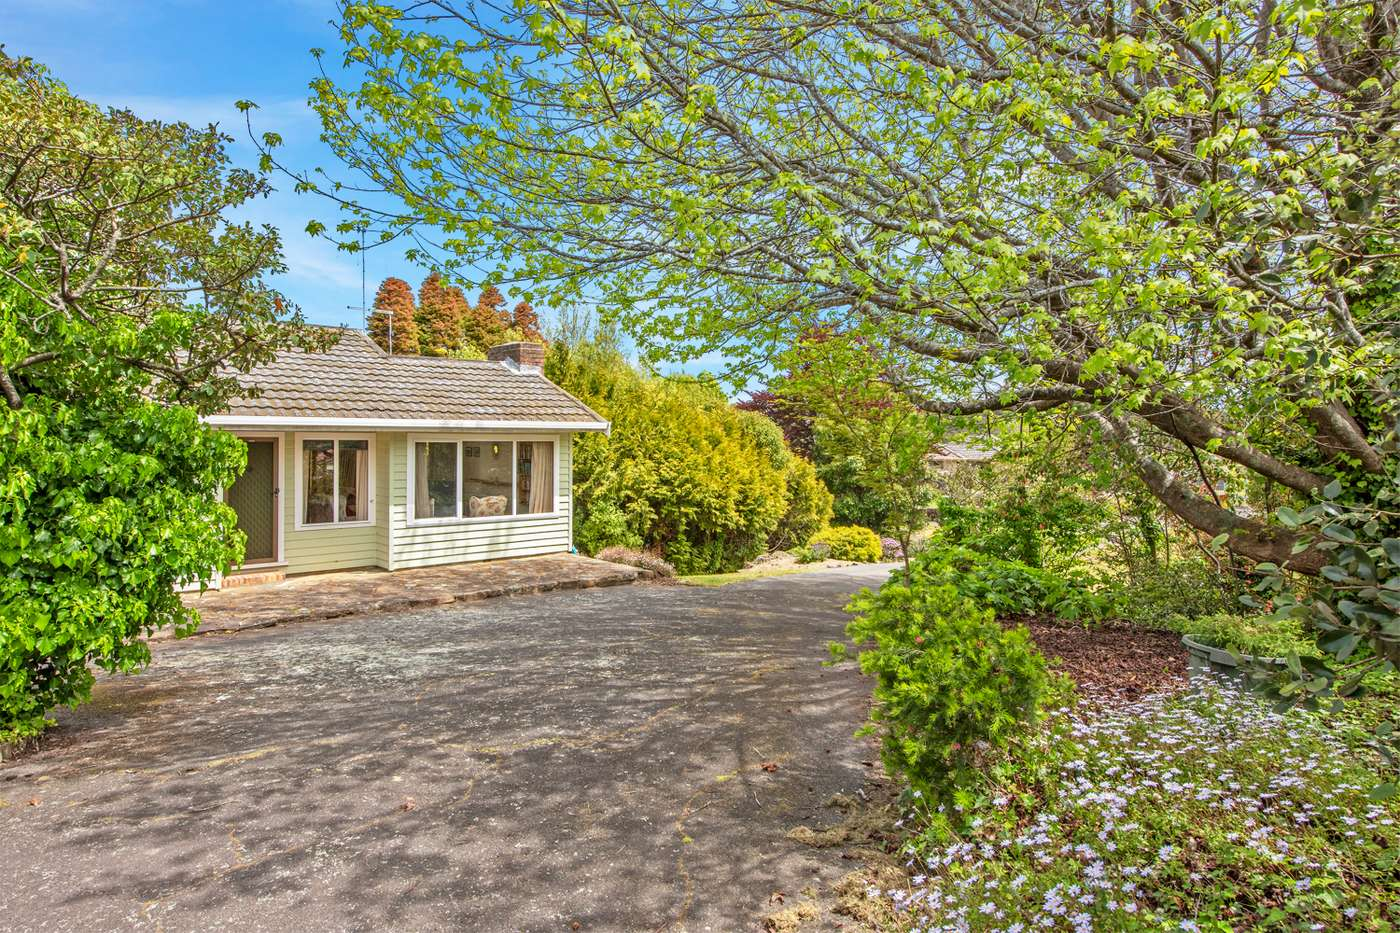 Main view of Homely house listing, 133 South Road, West Ulverstone, TAS 7315